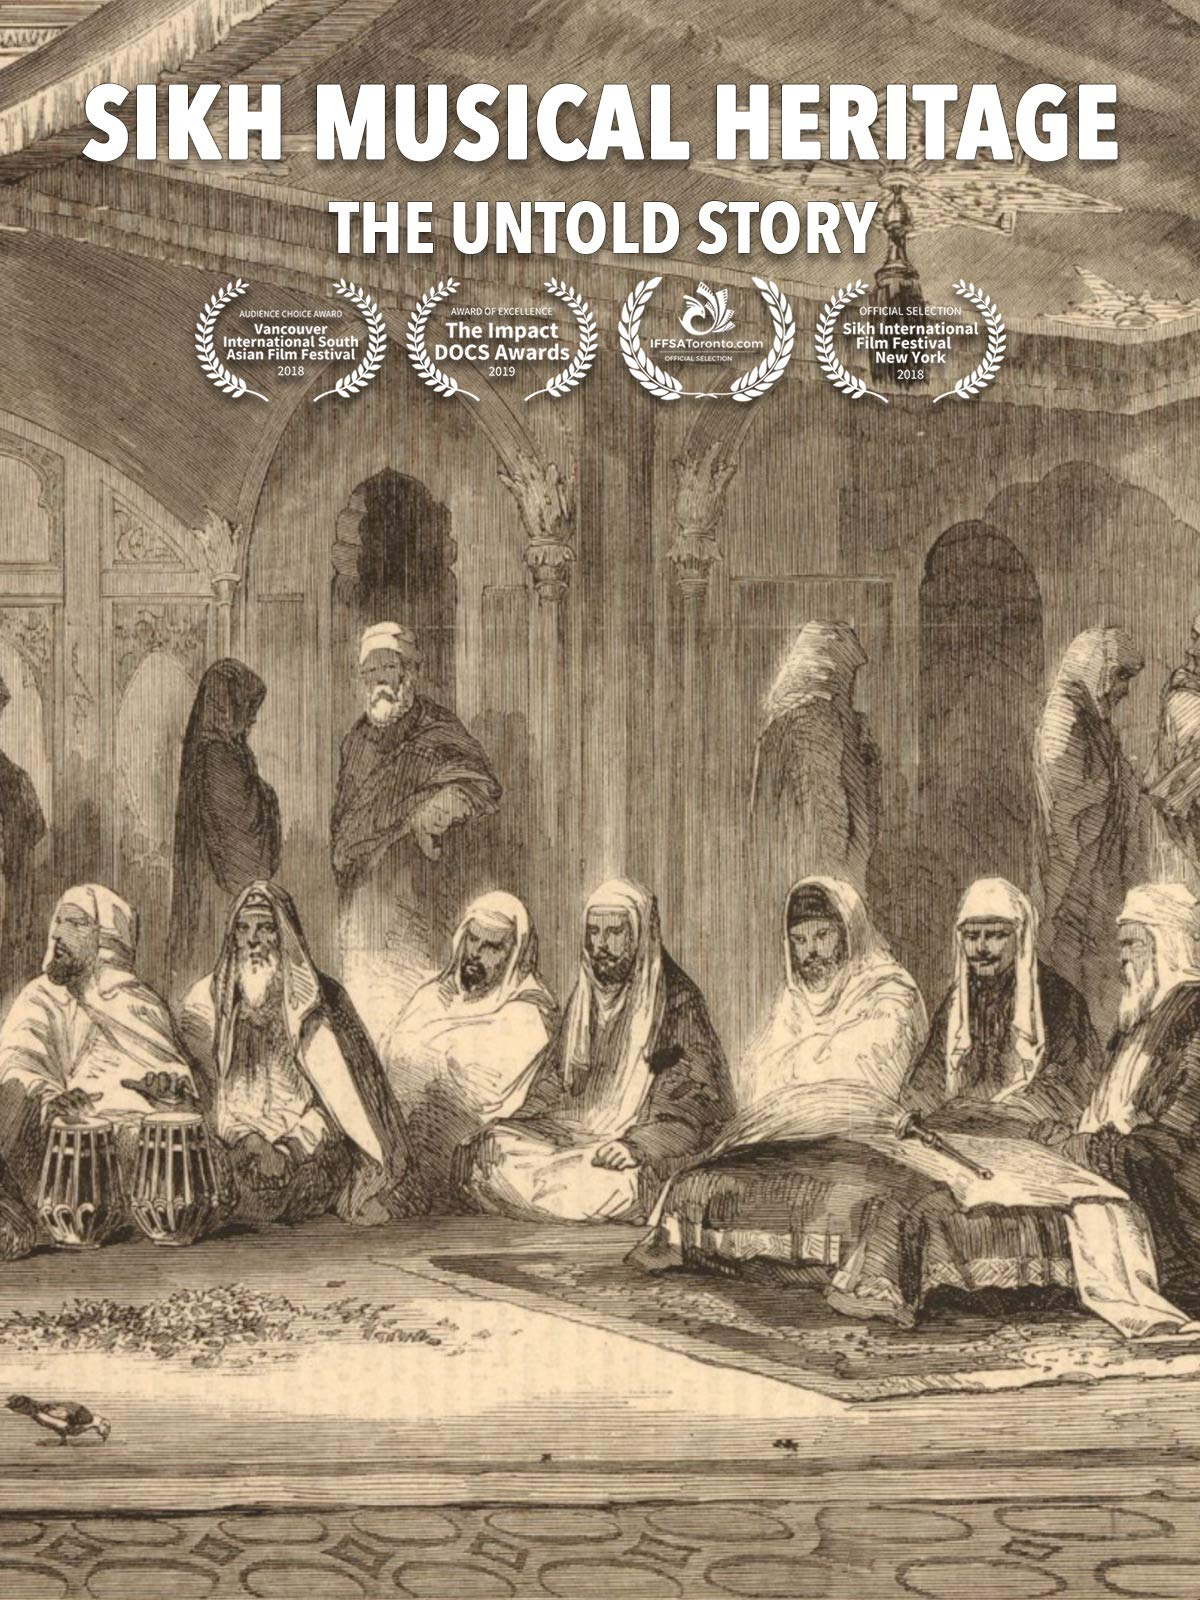 Sikh Musical Heritage - The Untold Story on Amazon Prime Video UK